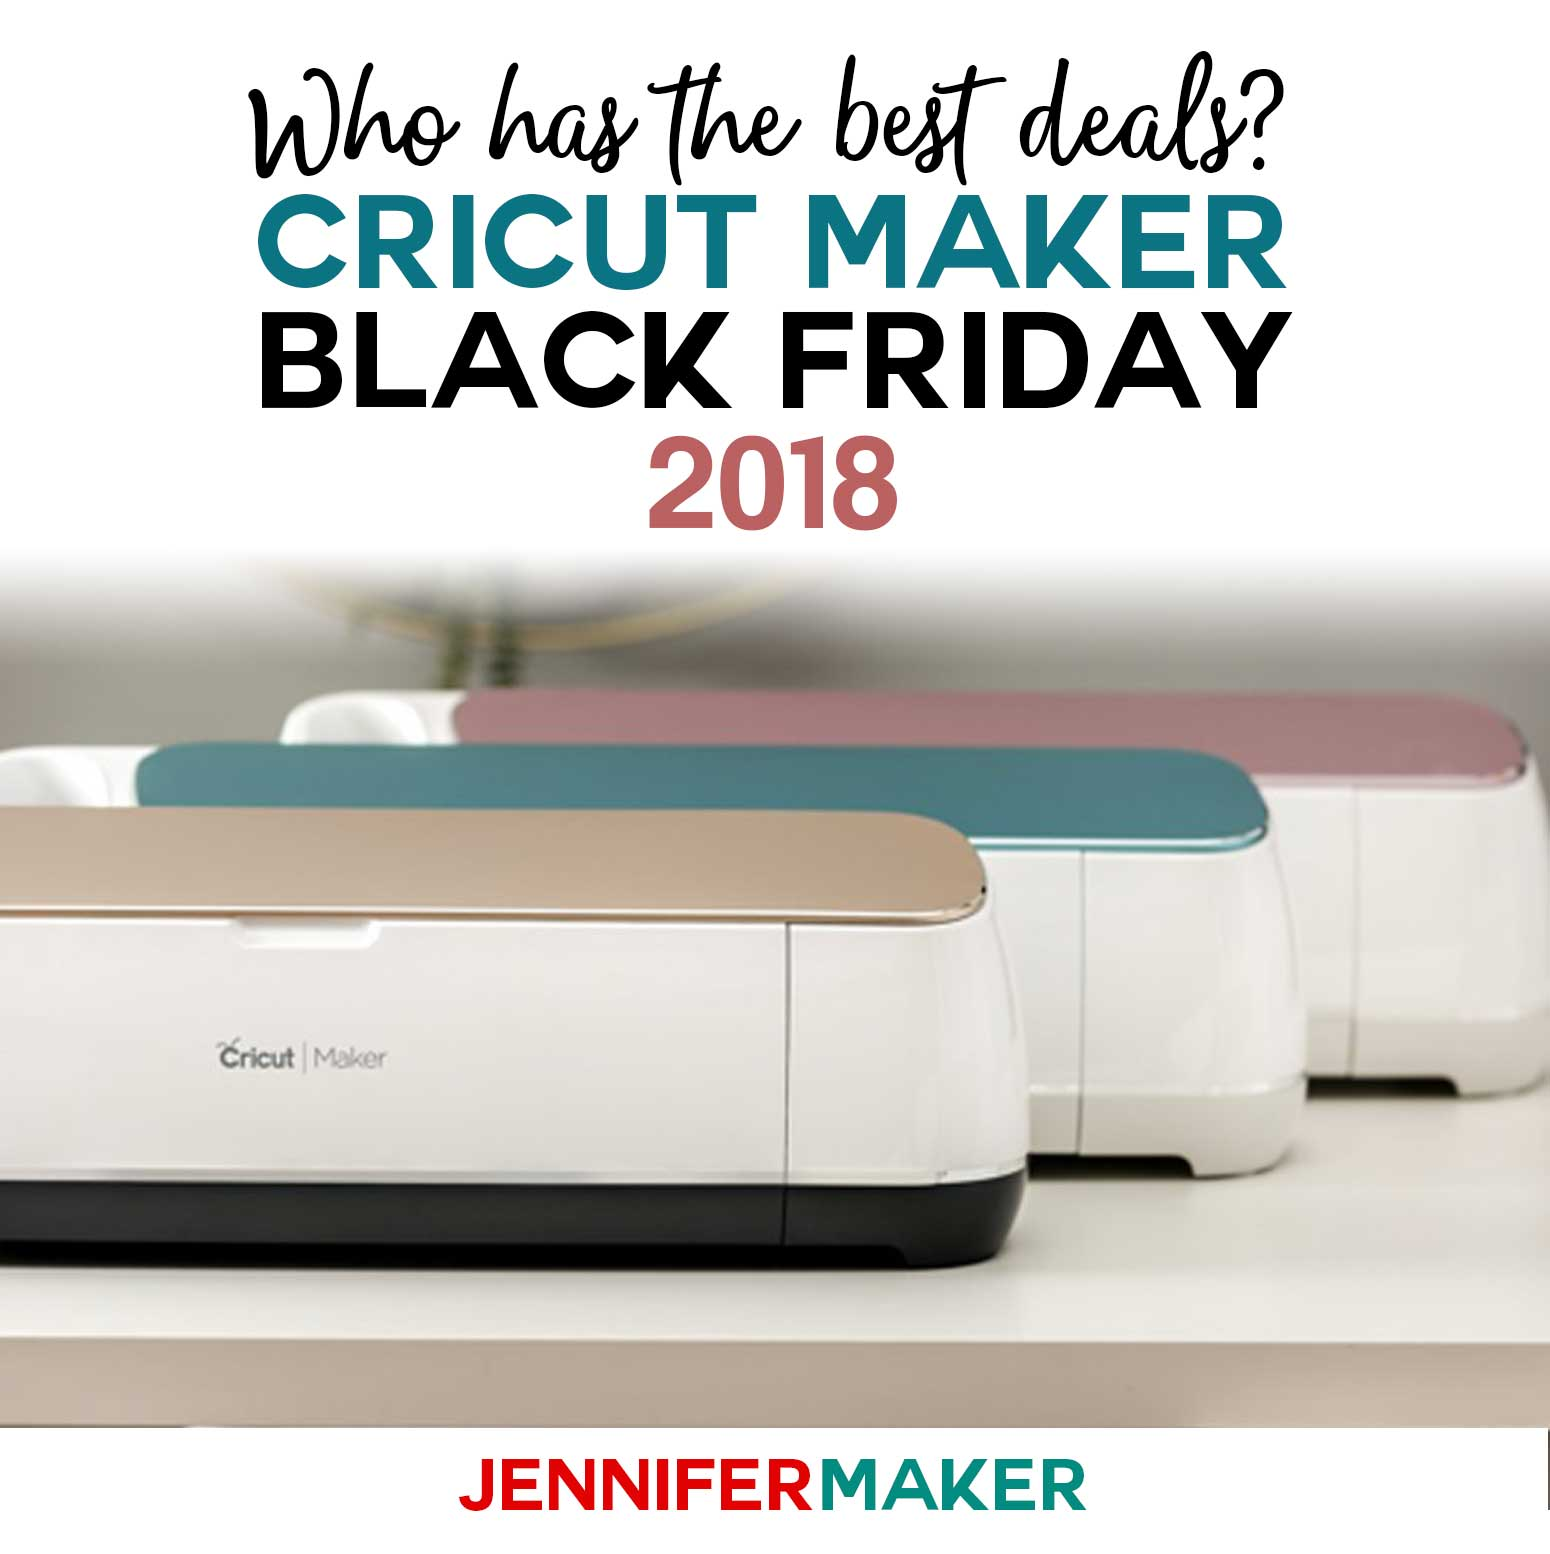 Cricut Maker Cyber Monday 2018 Deals Bargains Jennifer Maker